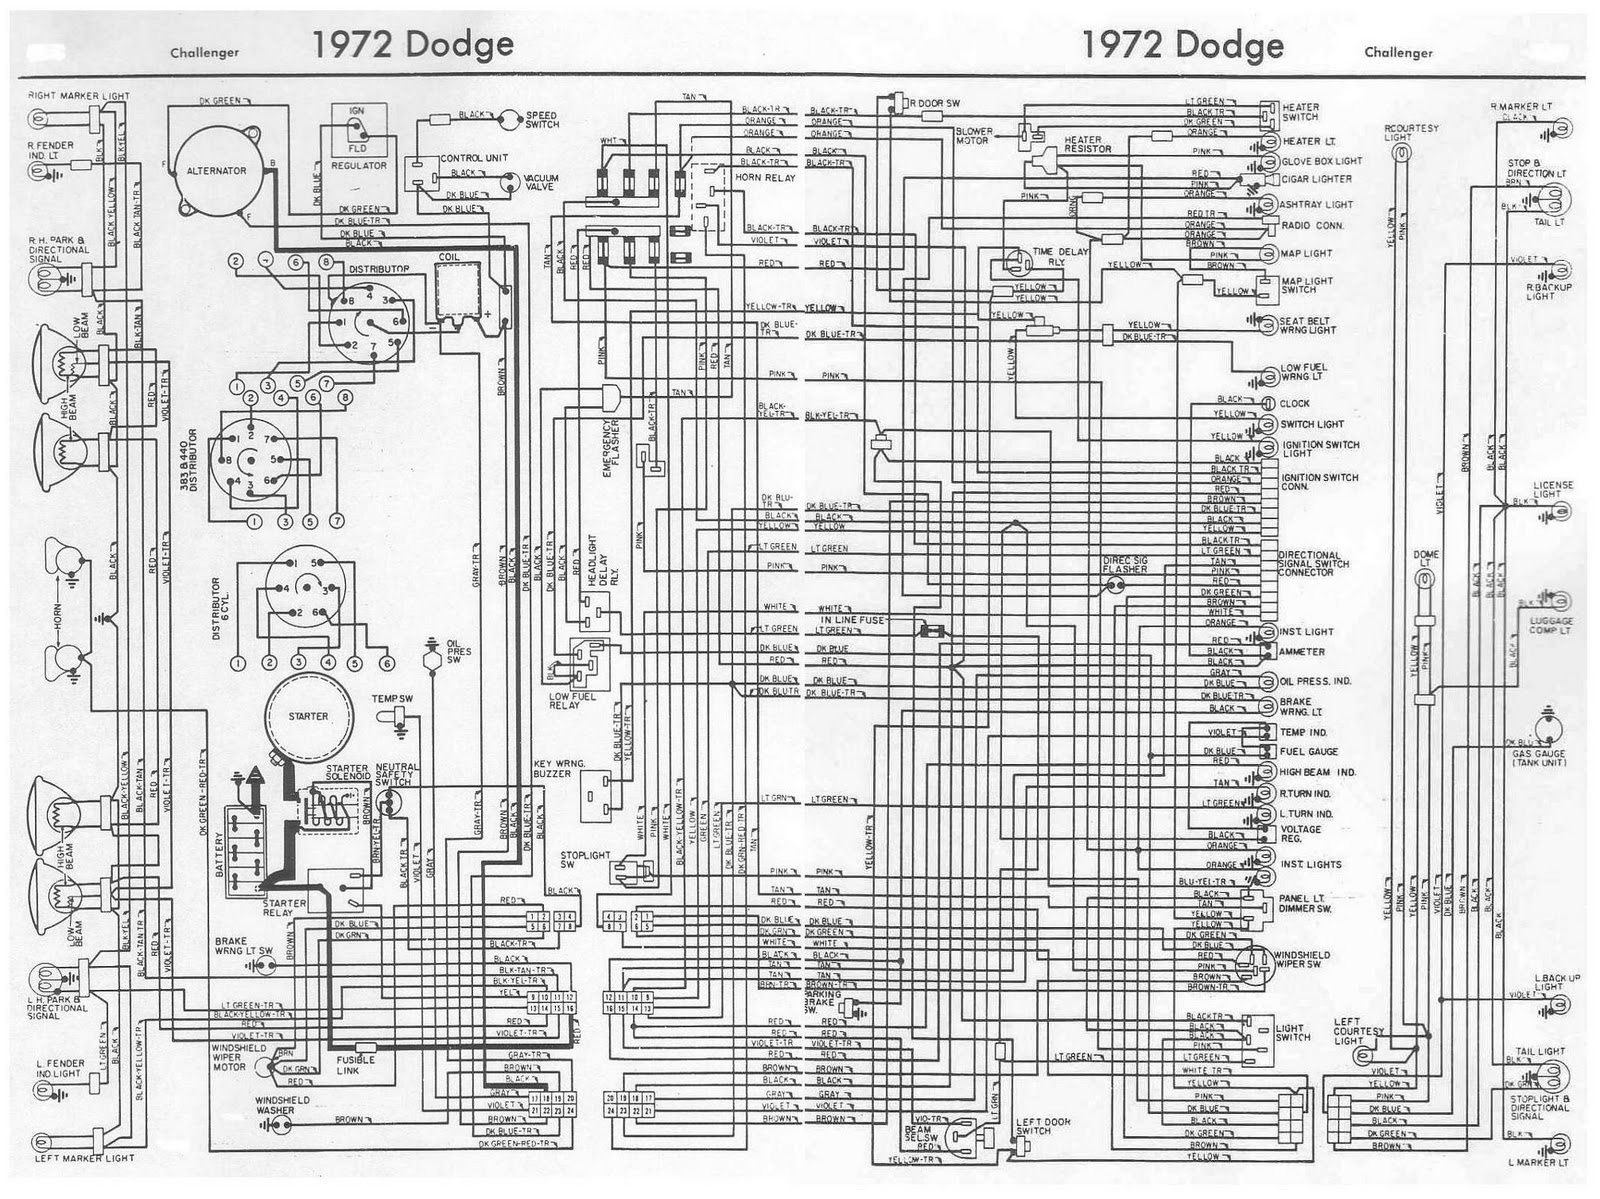 Dodge Challenger Wiring Diagram Opinions About C5500 Brake Light Pigtail 1972 Complete All Diagrams 1971